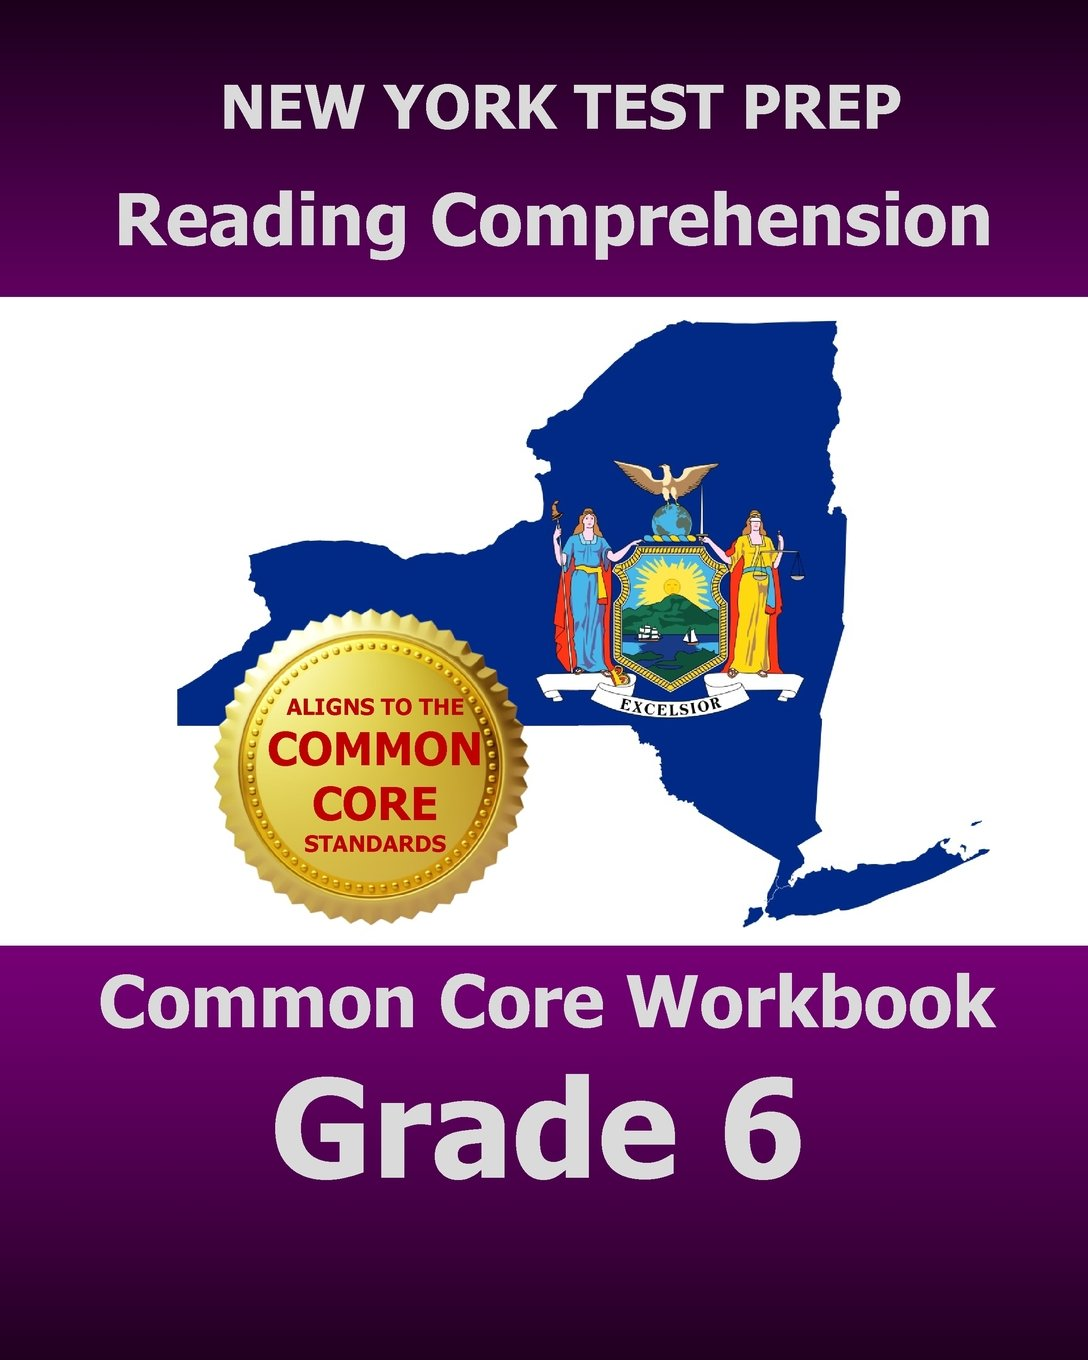 NEW YORK TEST PREP Reading Comprehension Common Core Workbook Grade 6: Covers the Literature and Informational Text Reading Standards pdf